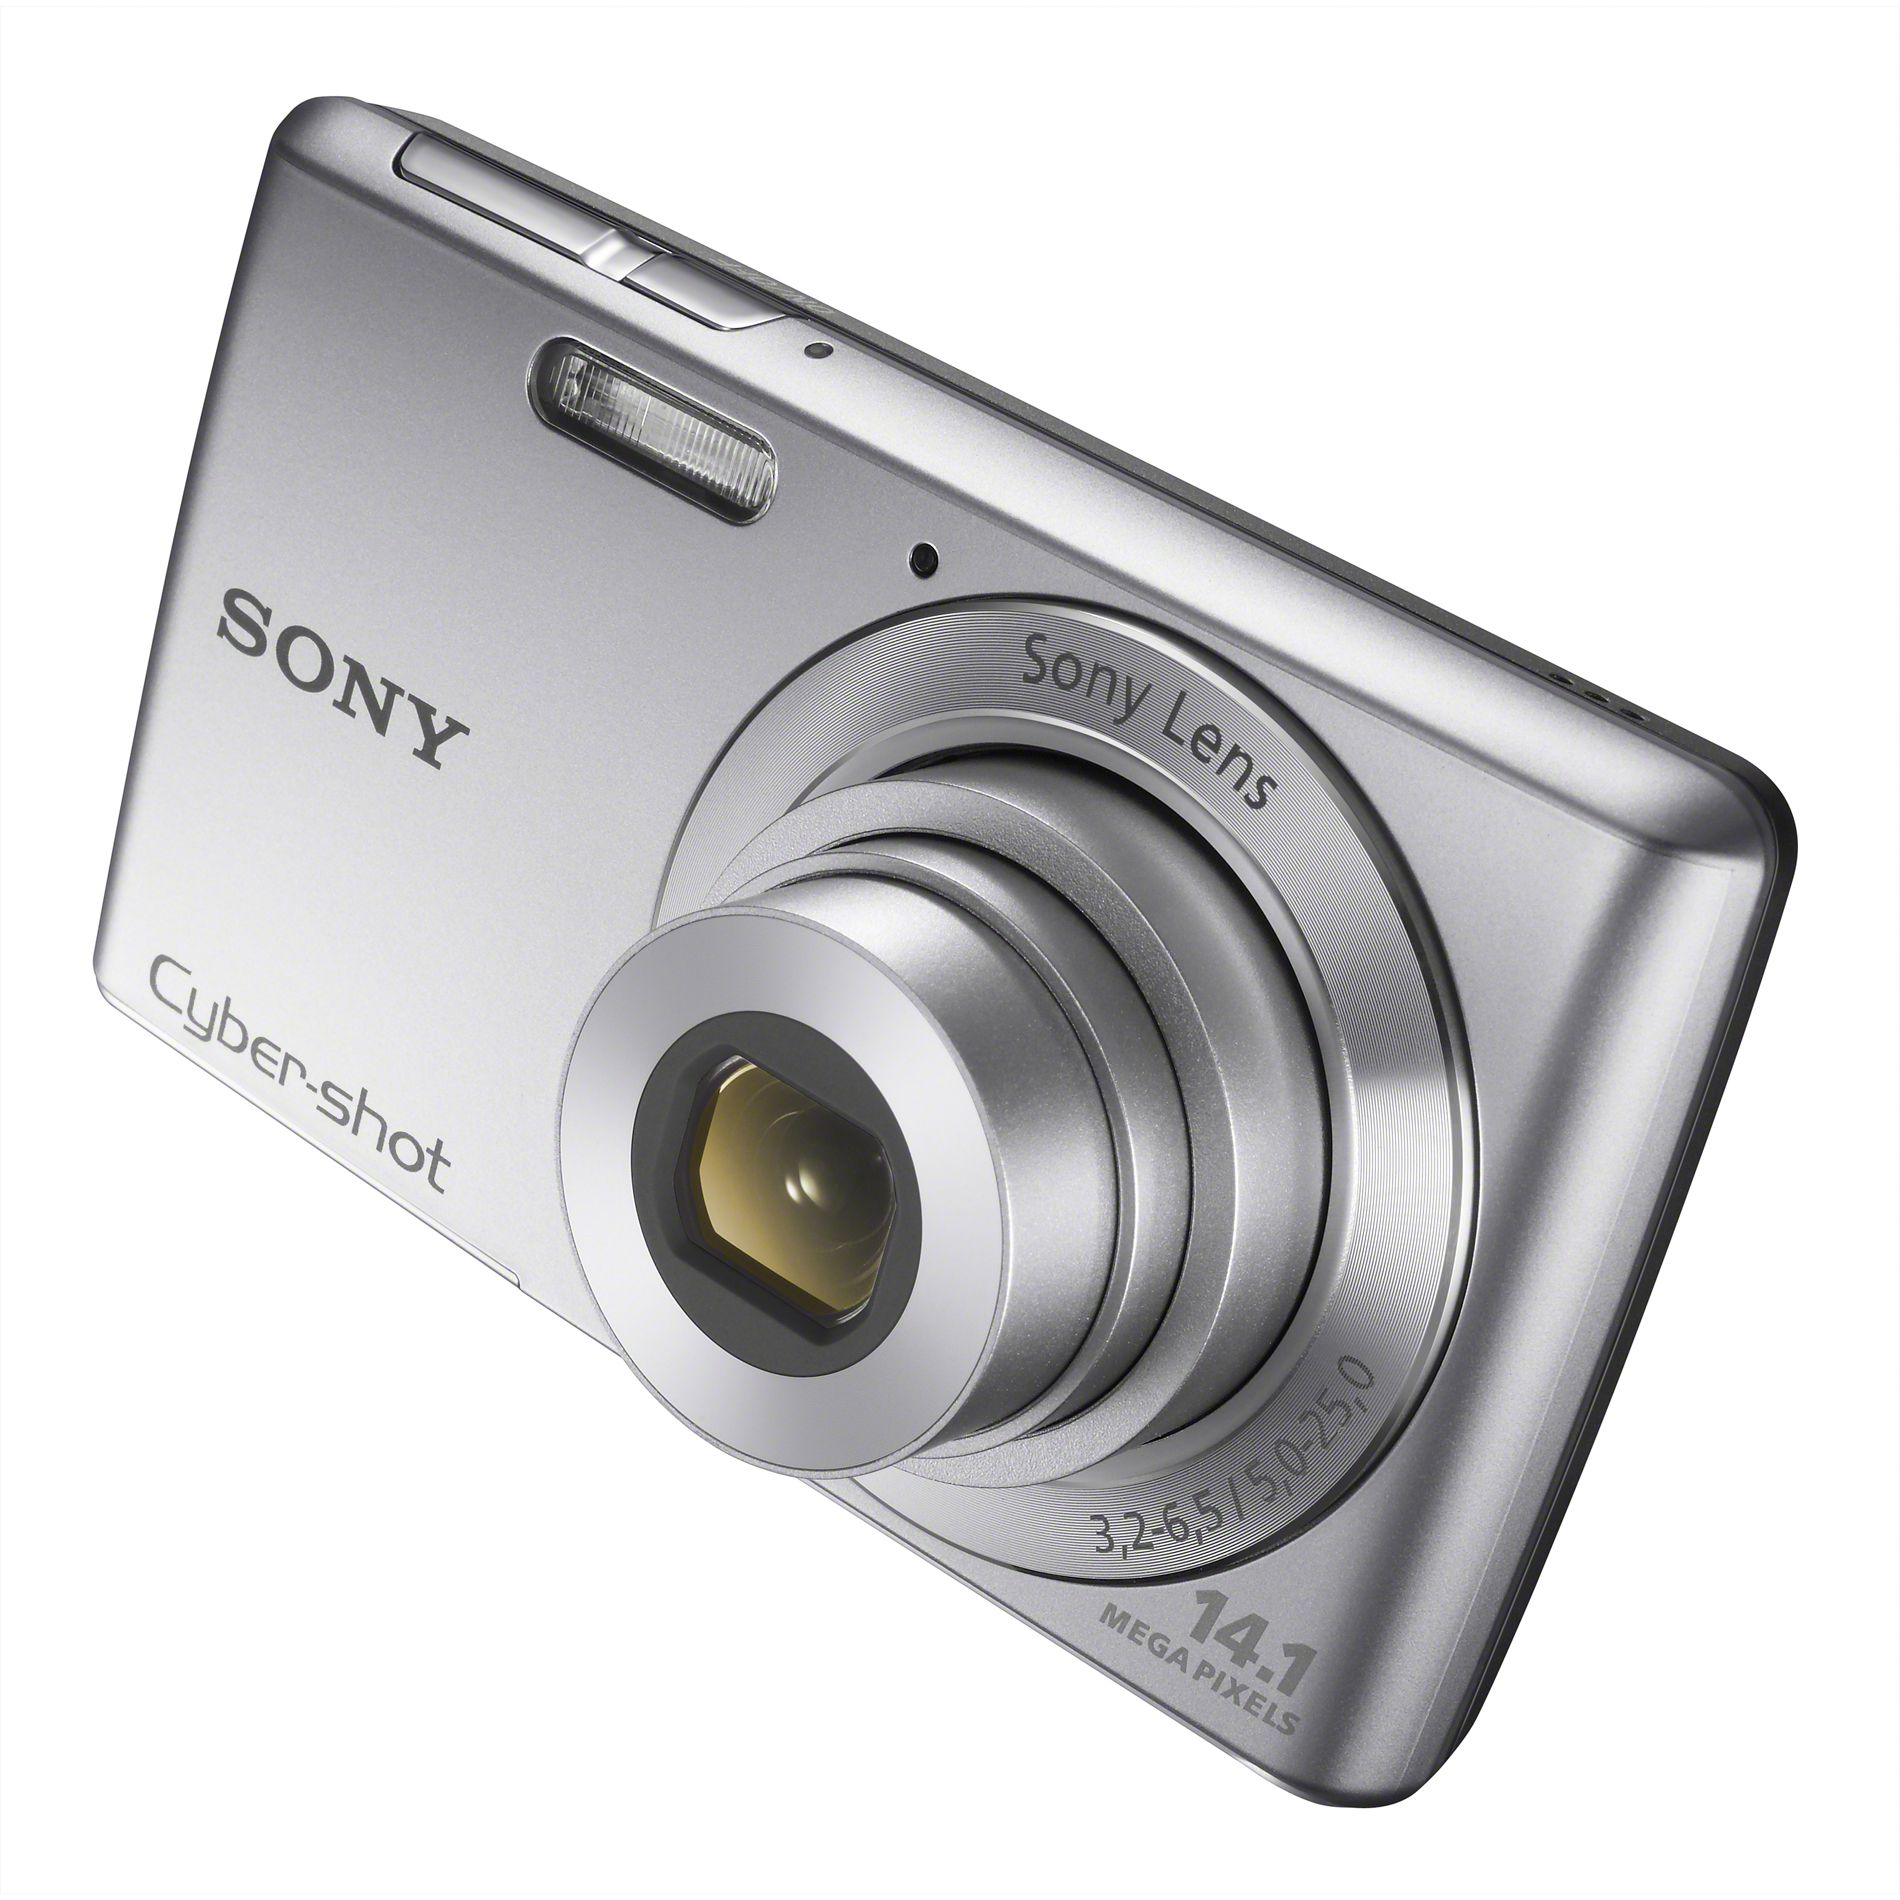 Sony DSC-W620 Compact Digital Camera